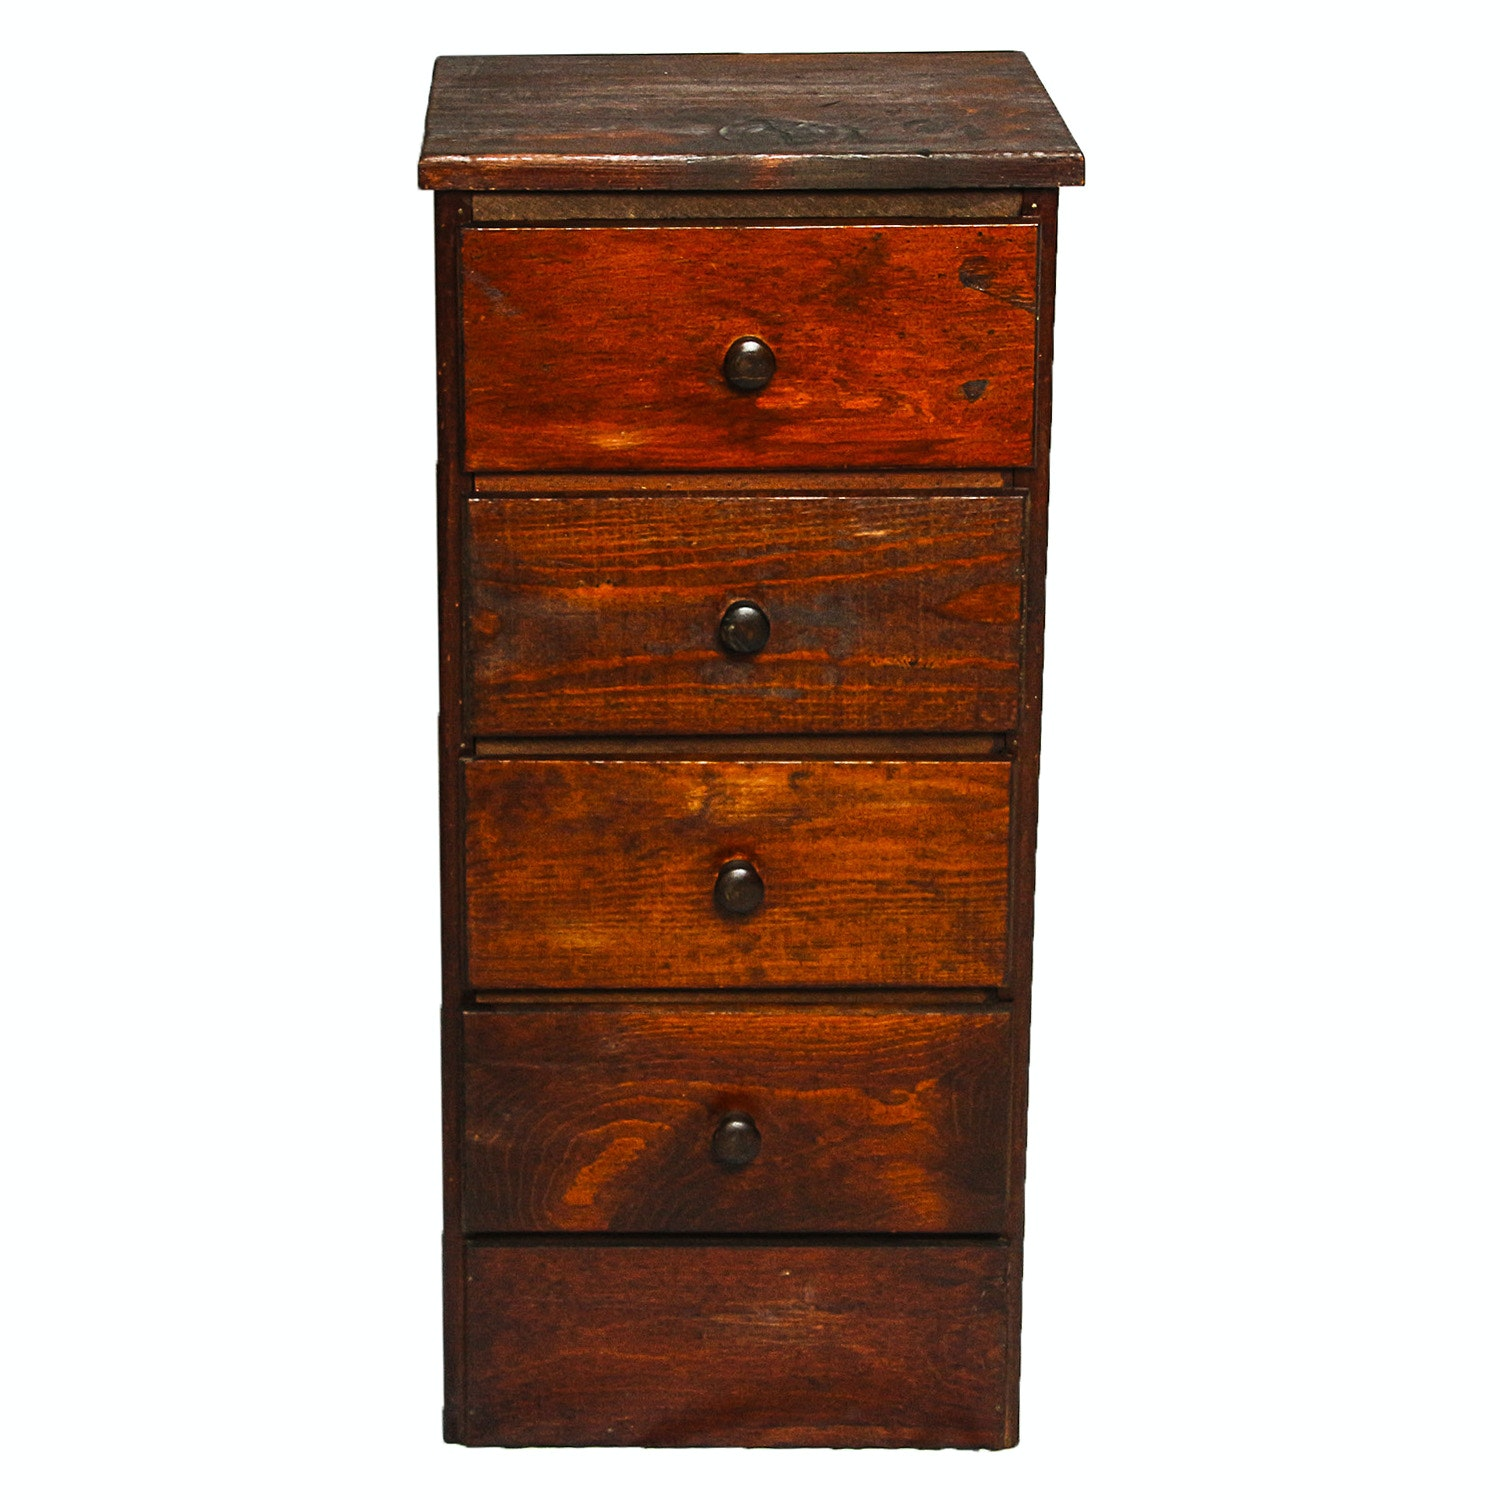 Vintage Rustic Style Four-Drawer Chest